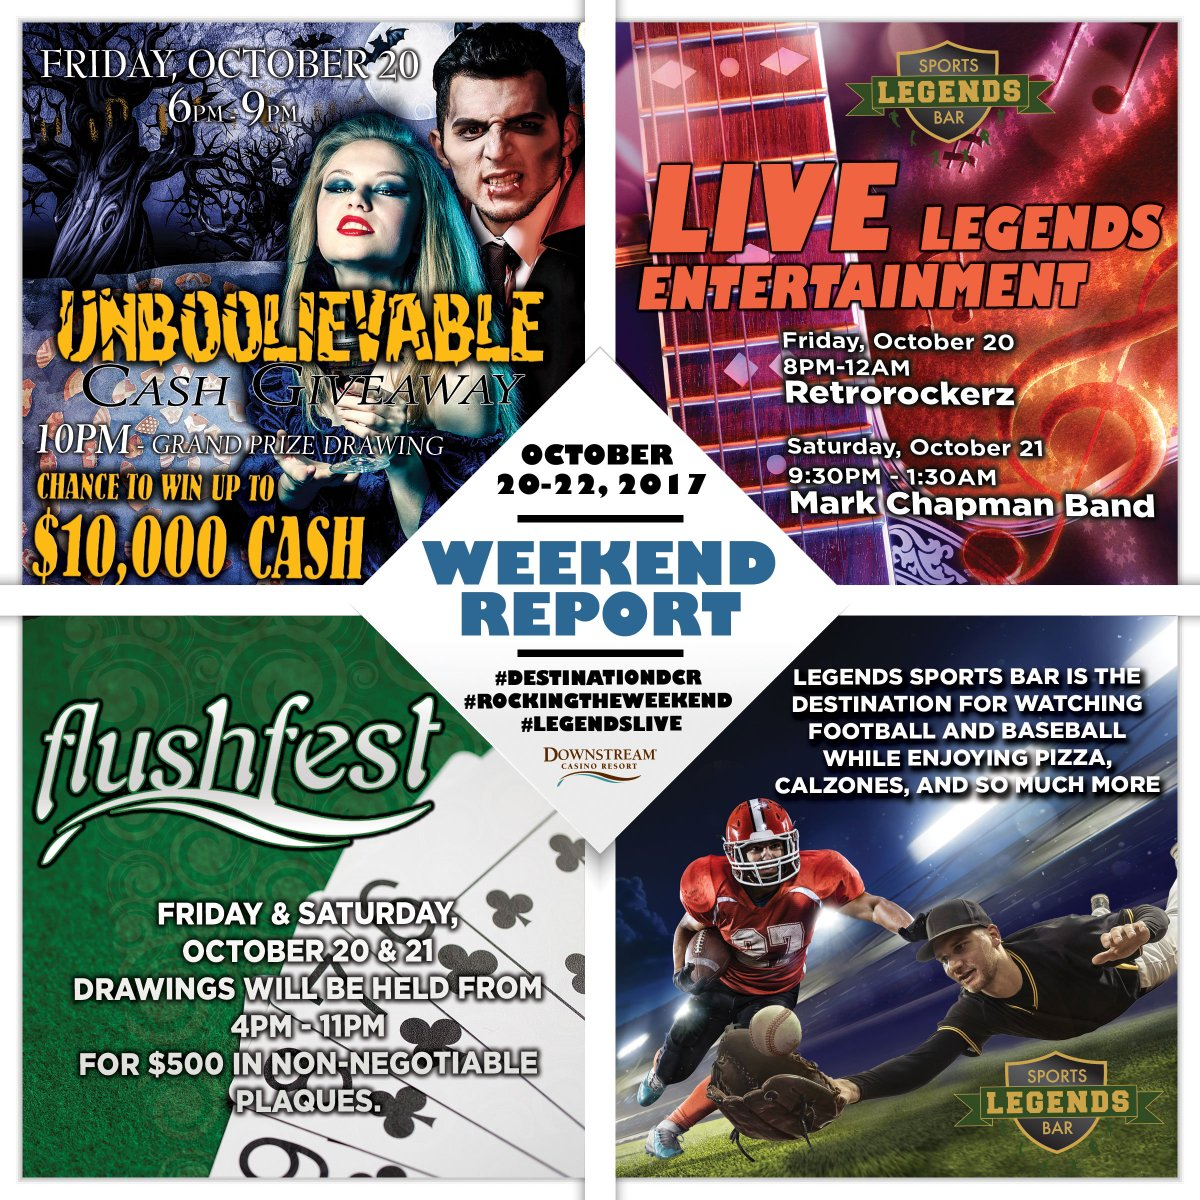 It's another great weekend for coming to Downstream Casino Resort. #destinationDCR #DCRweekends #legendslive